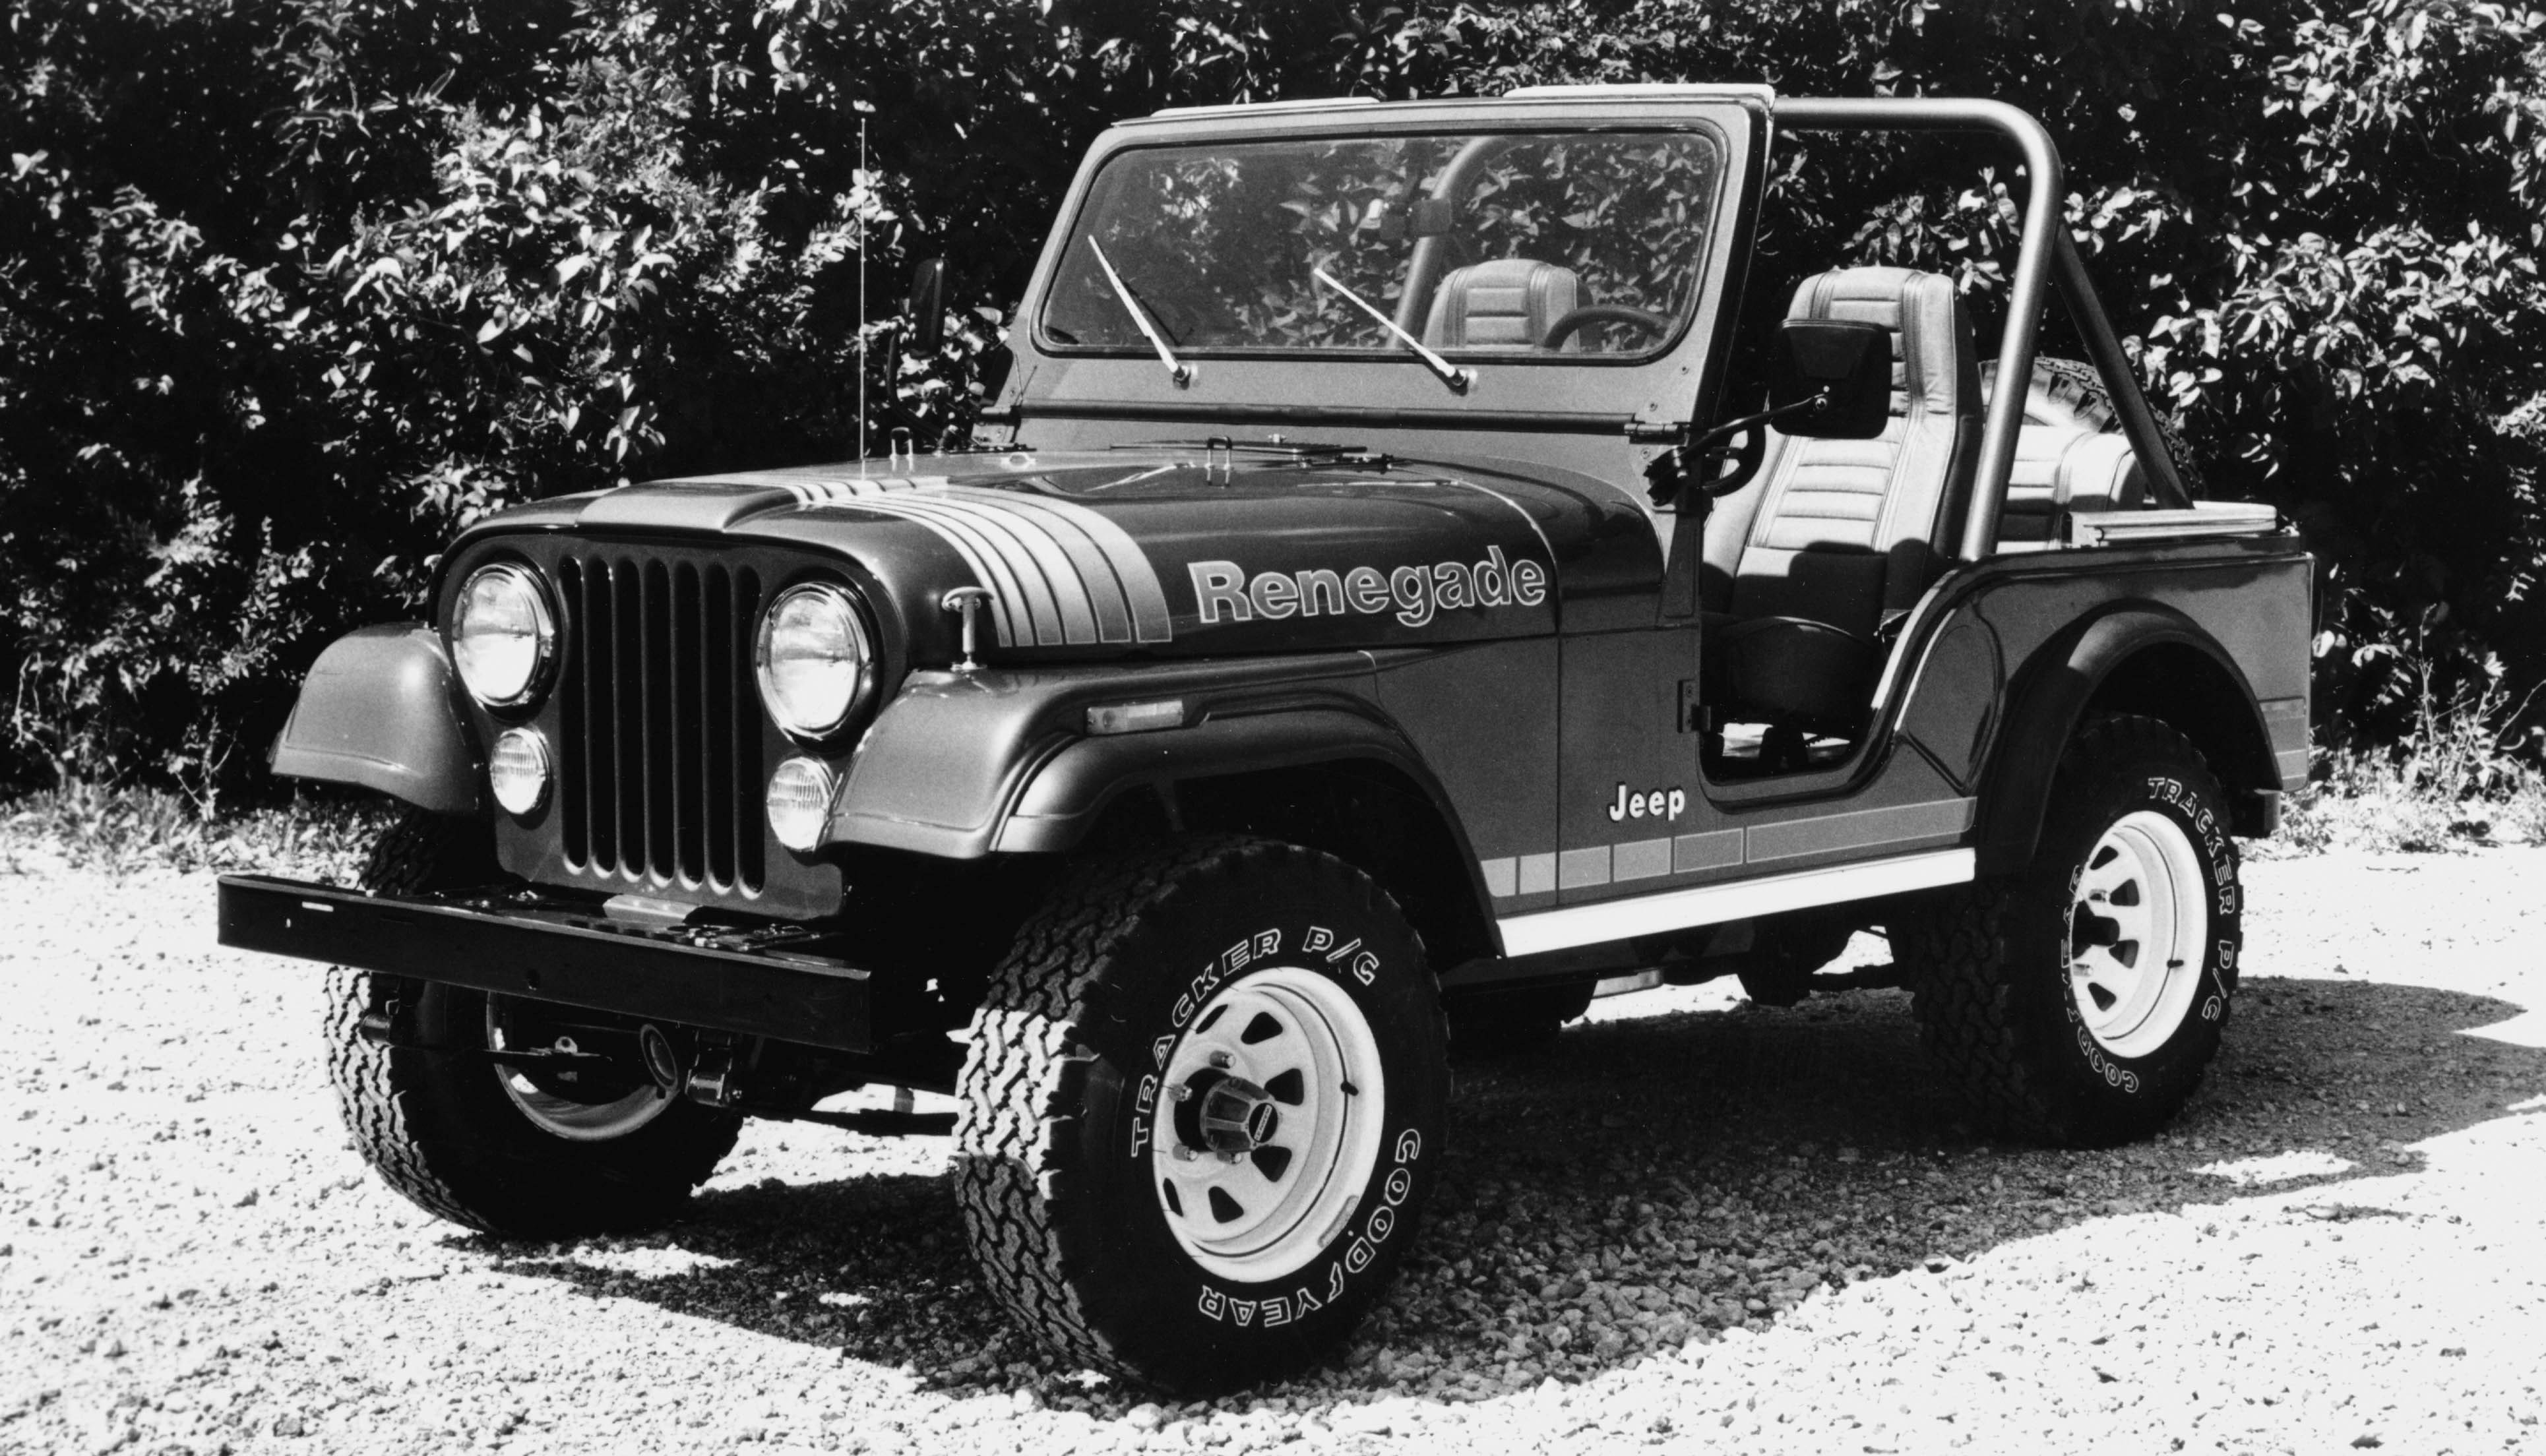 Latest Jeep Wrangler 23 Free Hd Car Wallpaper Free Download